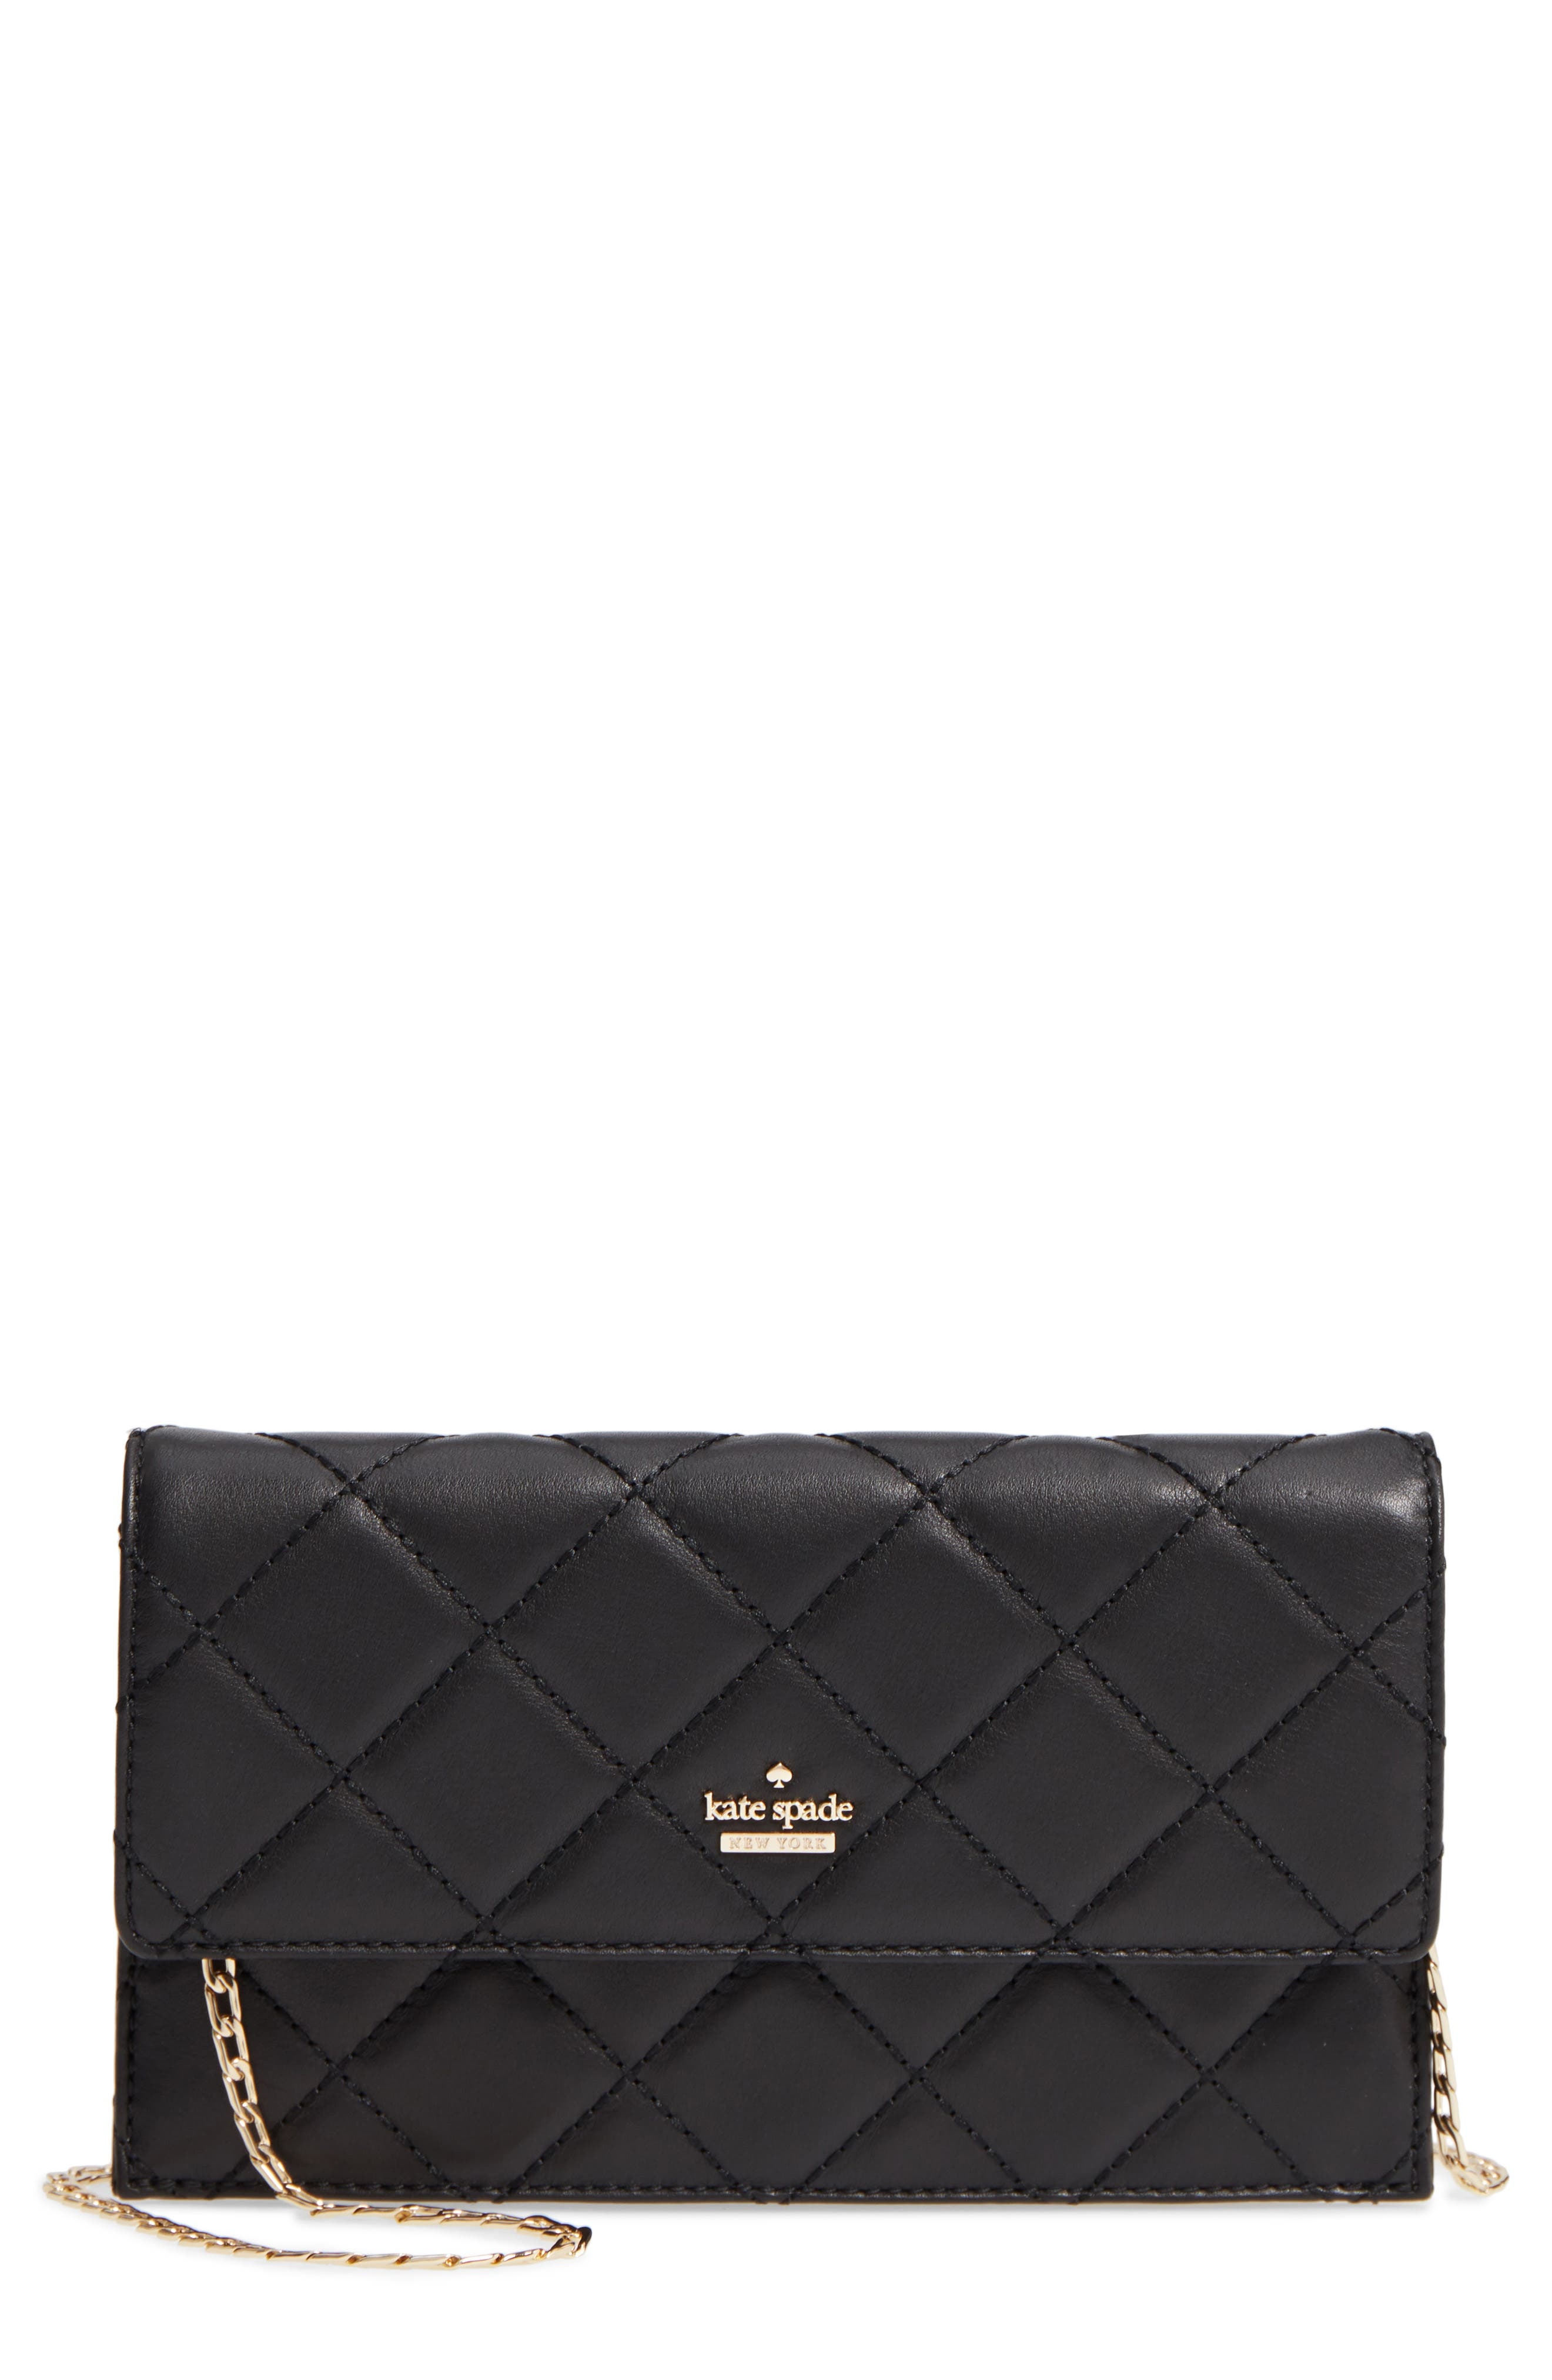 emerson place - brennan quilted leather convertible clutch & card holder,                         Main,                         color, 001